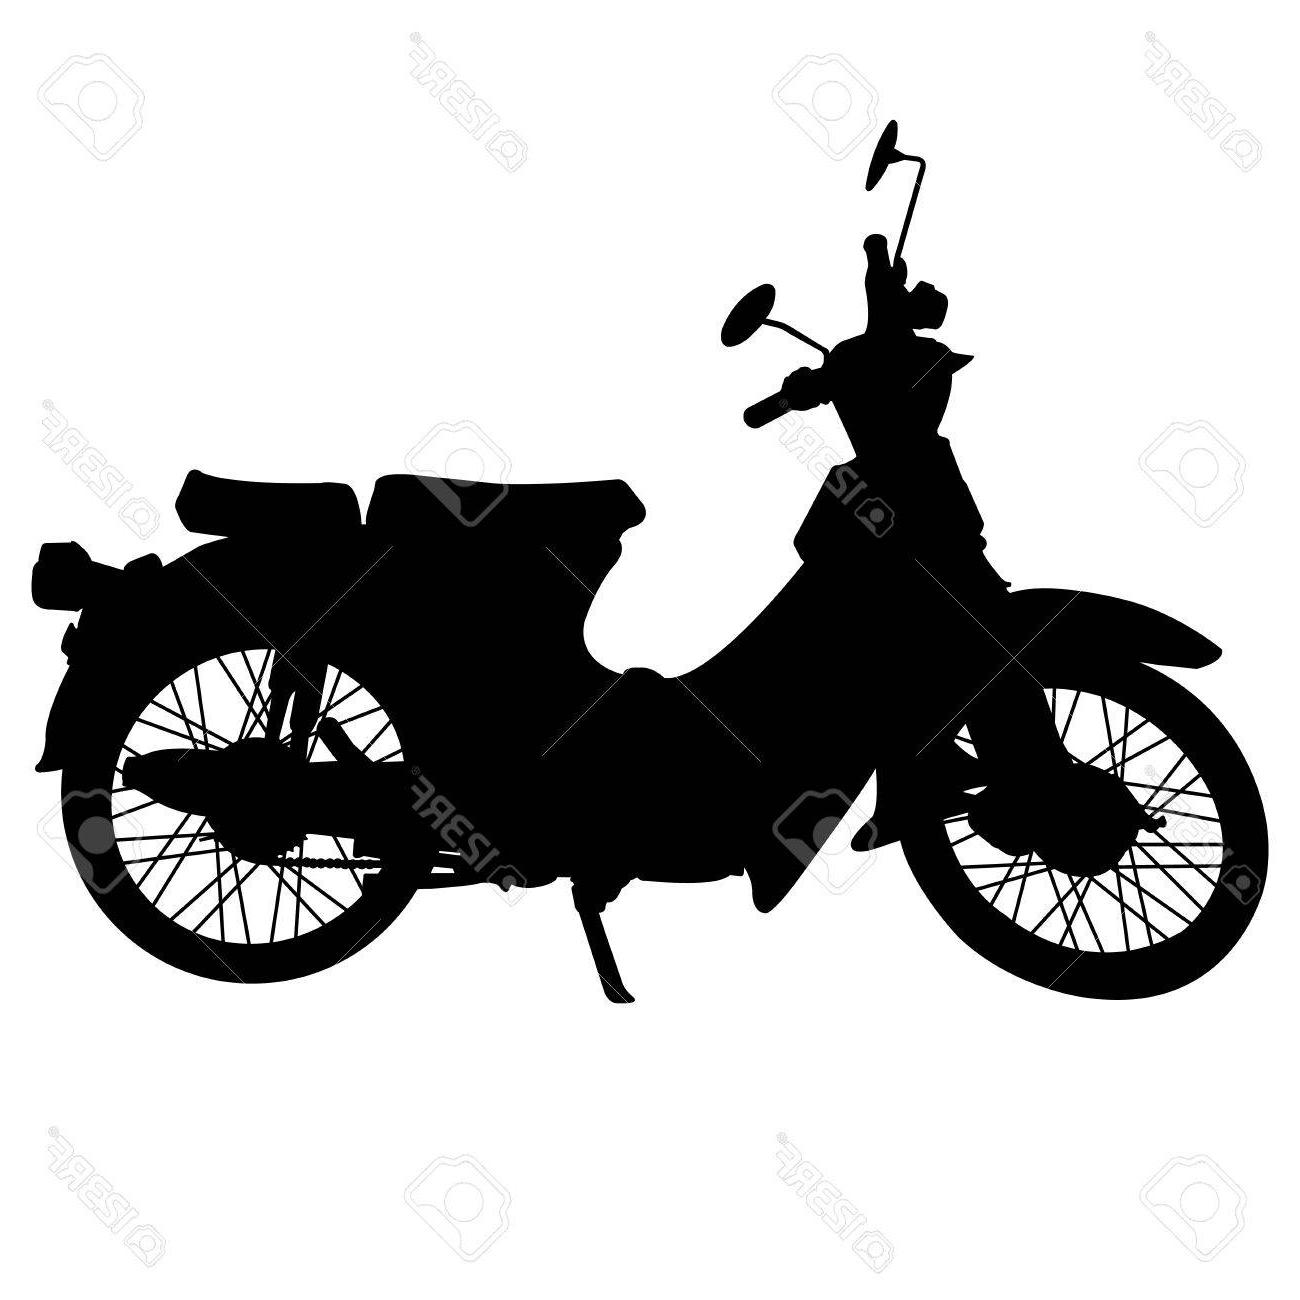 HD Vintage Motorcycle Silhouette Images » Free Vector Art.